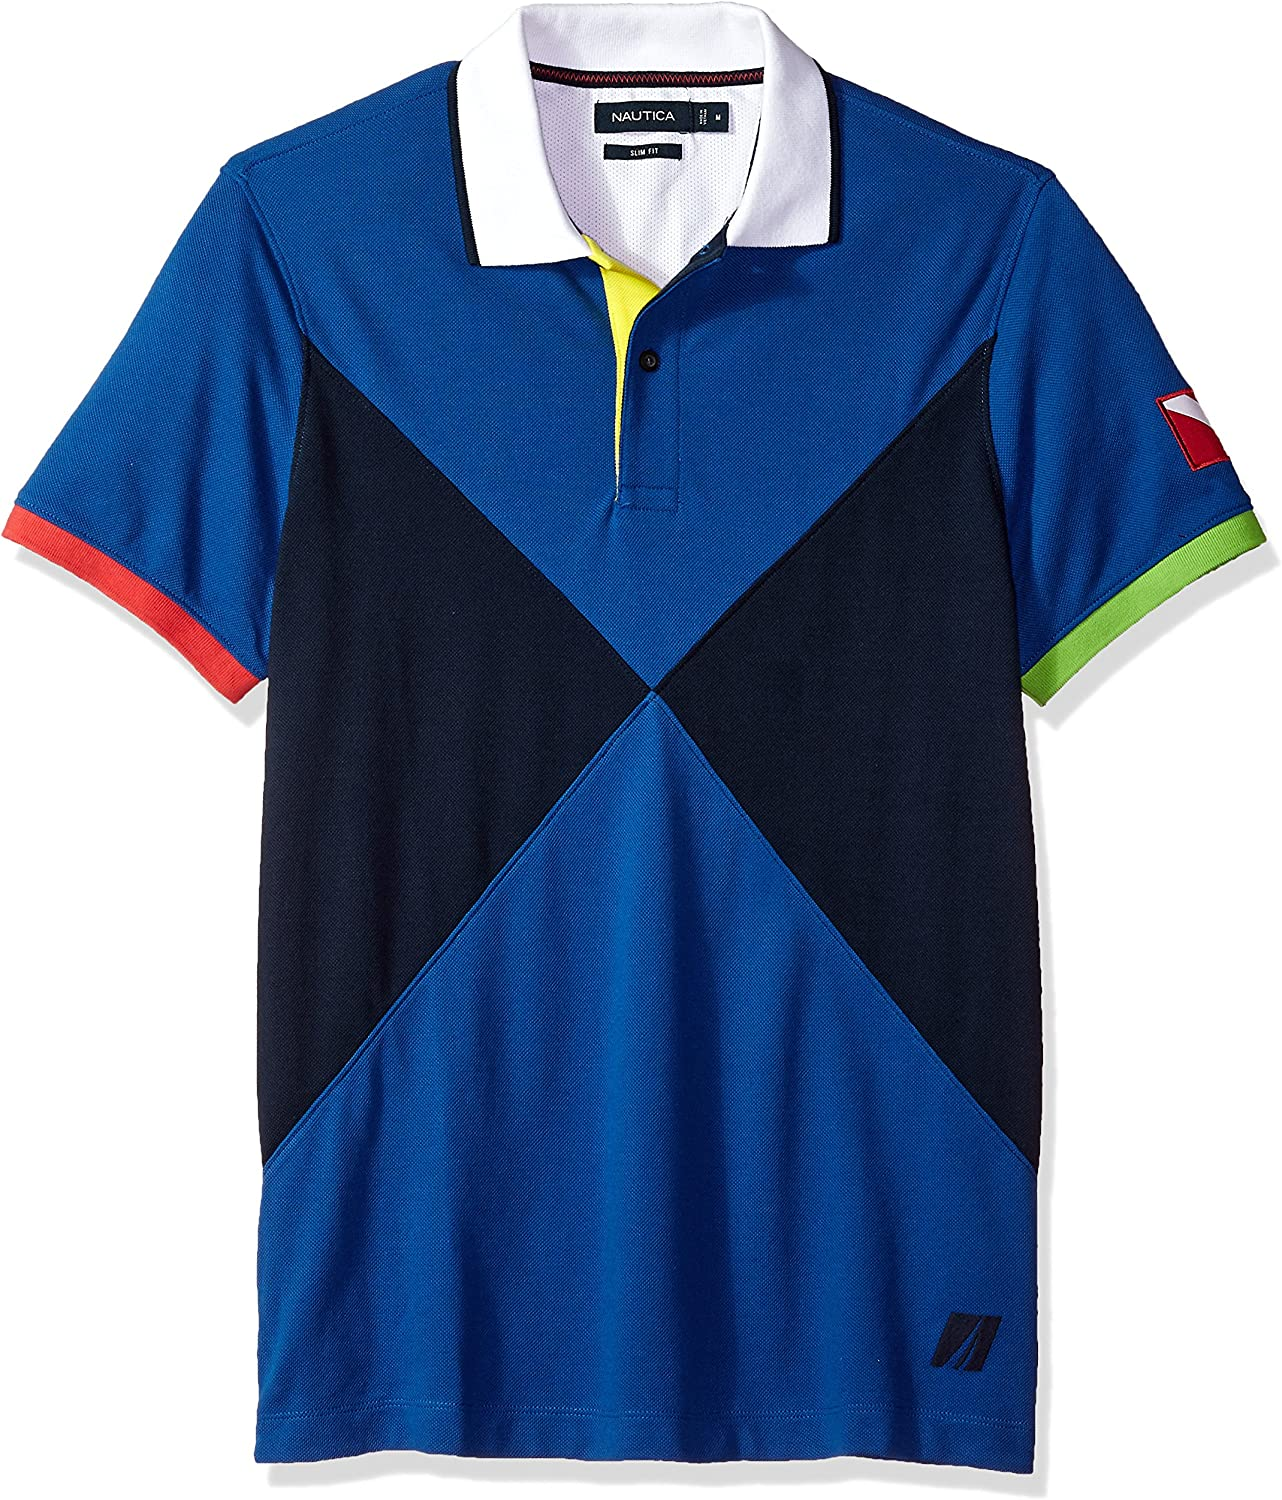 Nautica Hombre Manga Corta Camisa Polo - Azul - Medium: Amazon.es ...